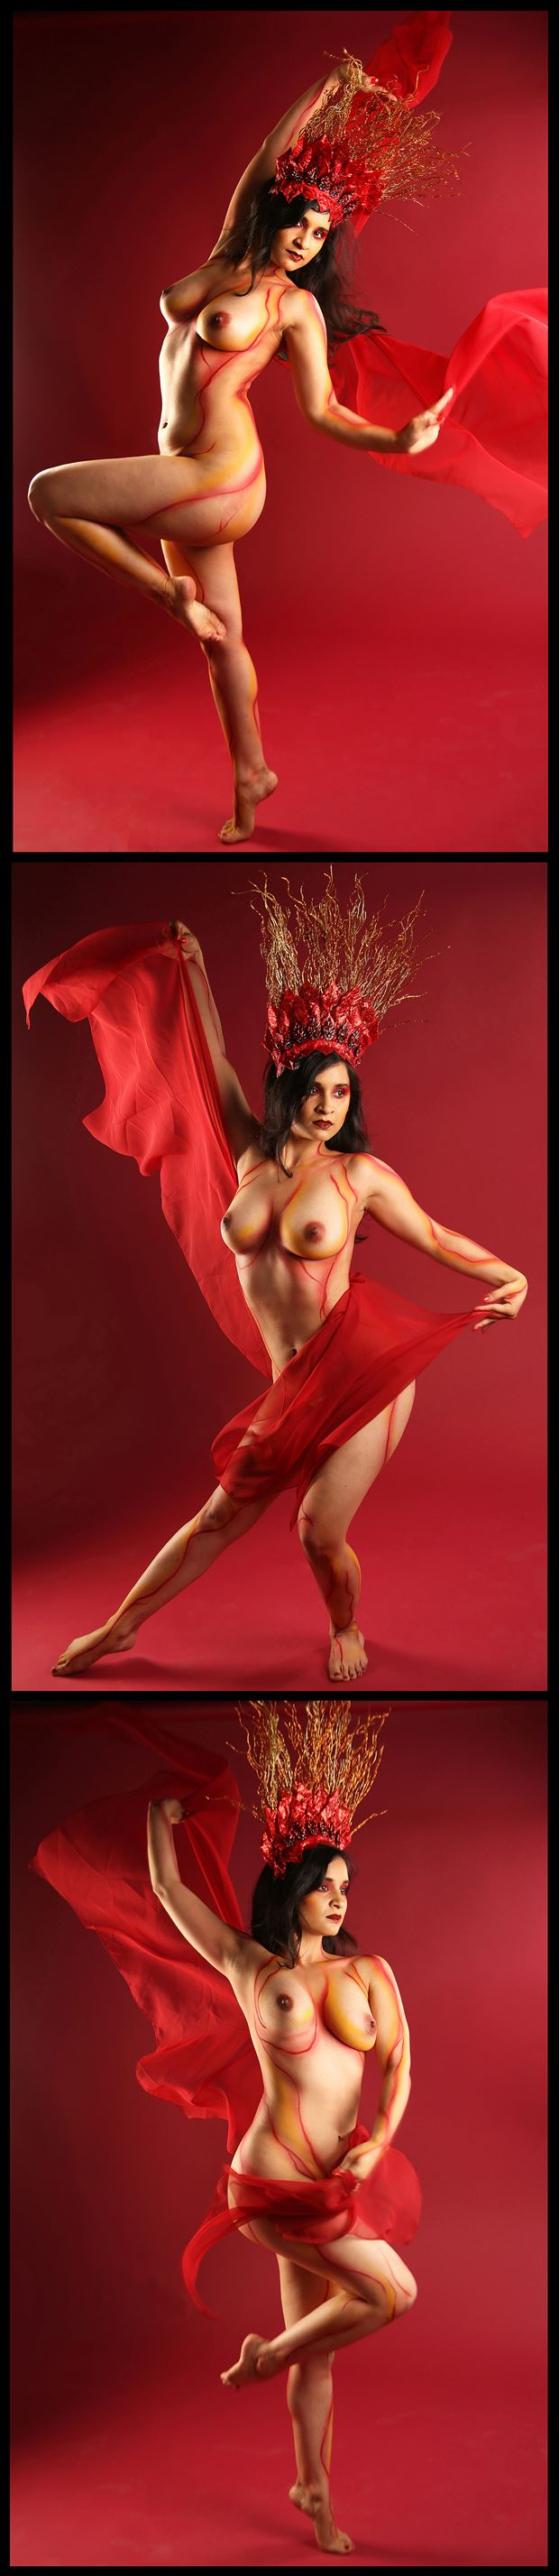 fire woman artistic nude photo by photographer exile gallery